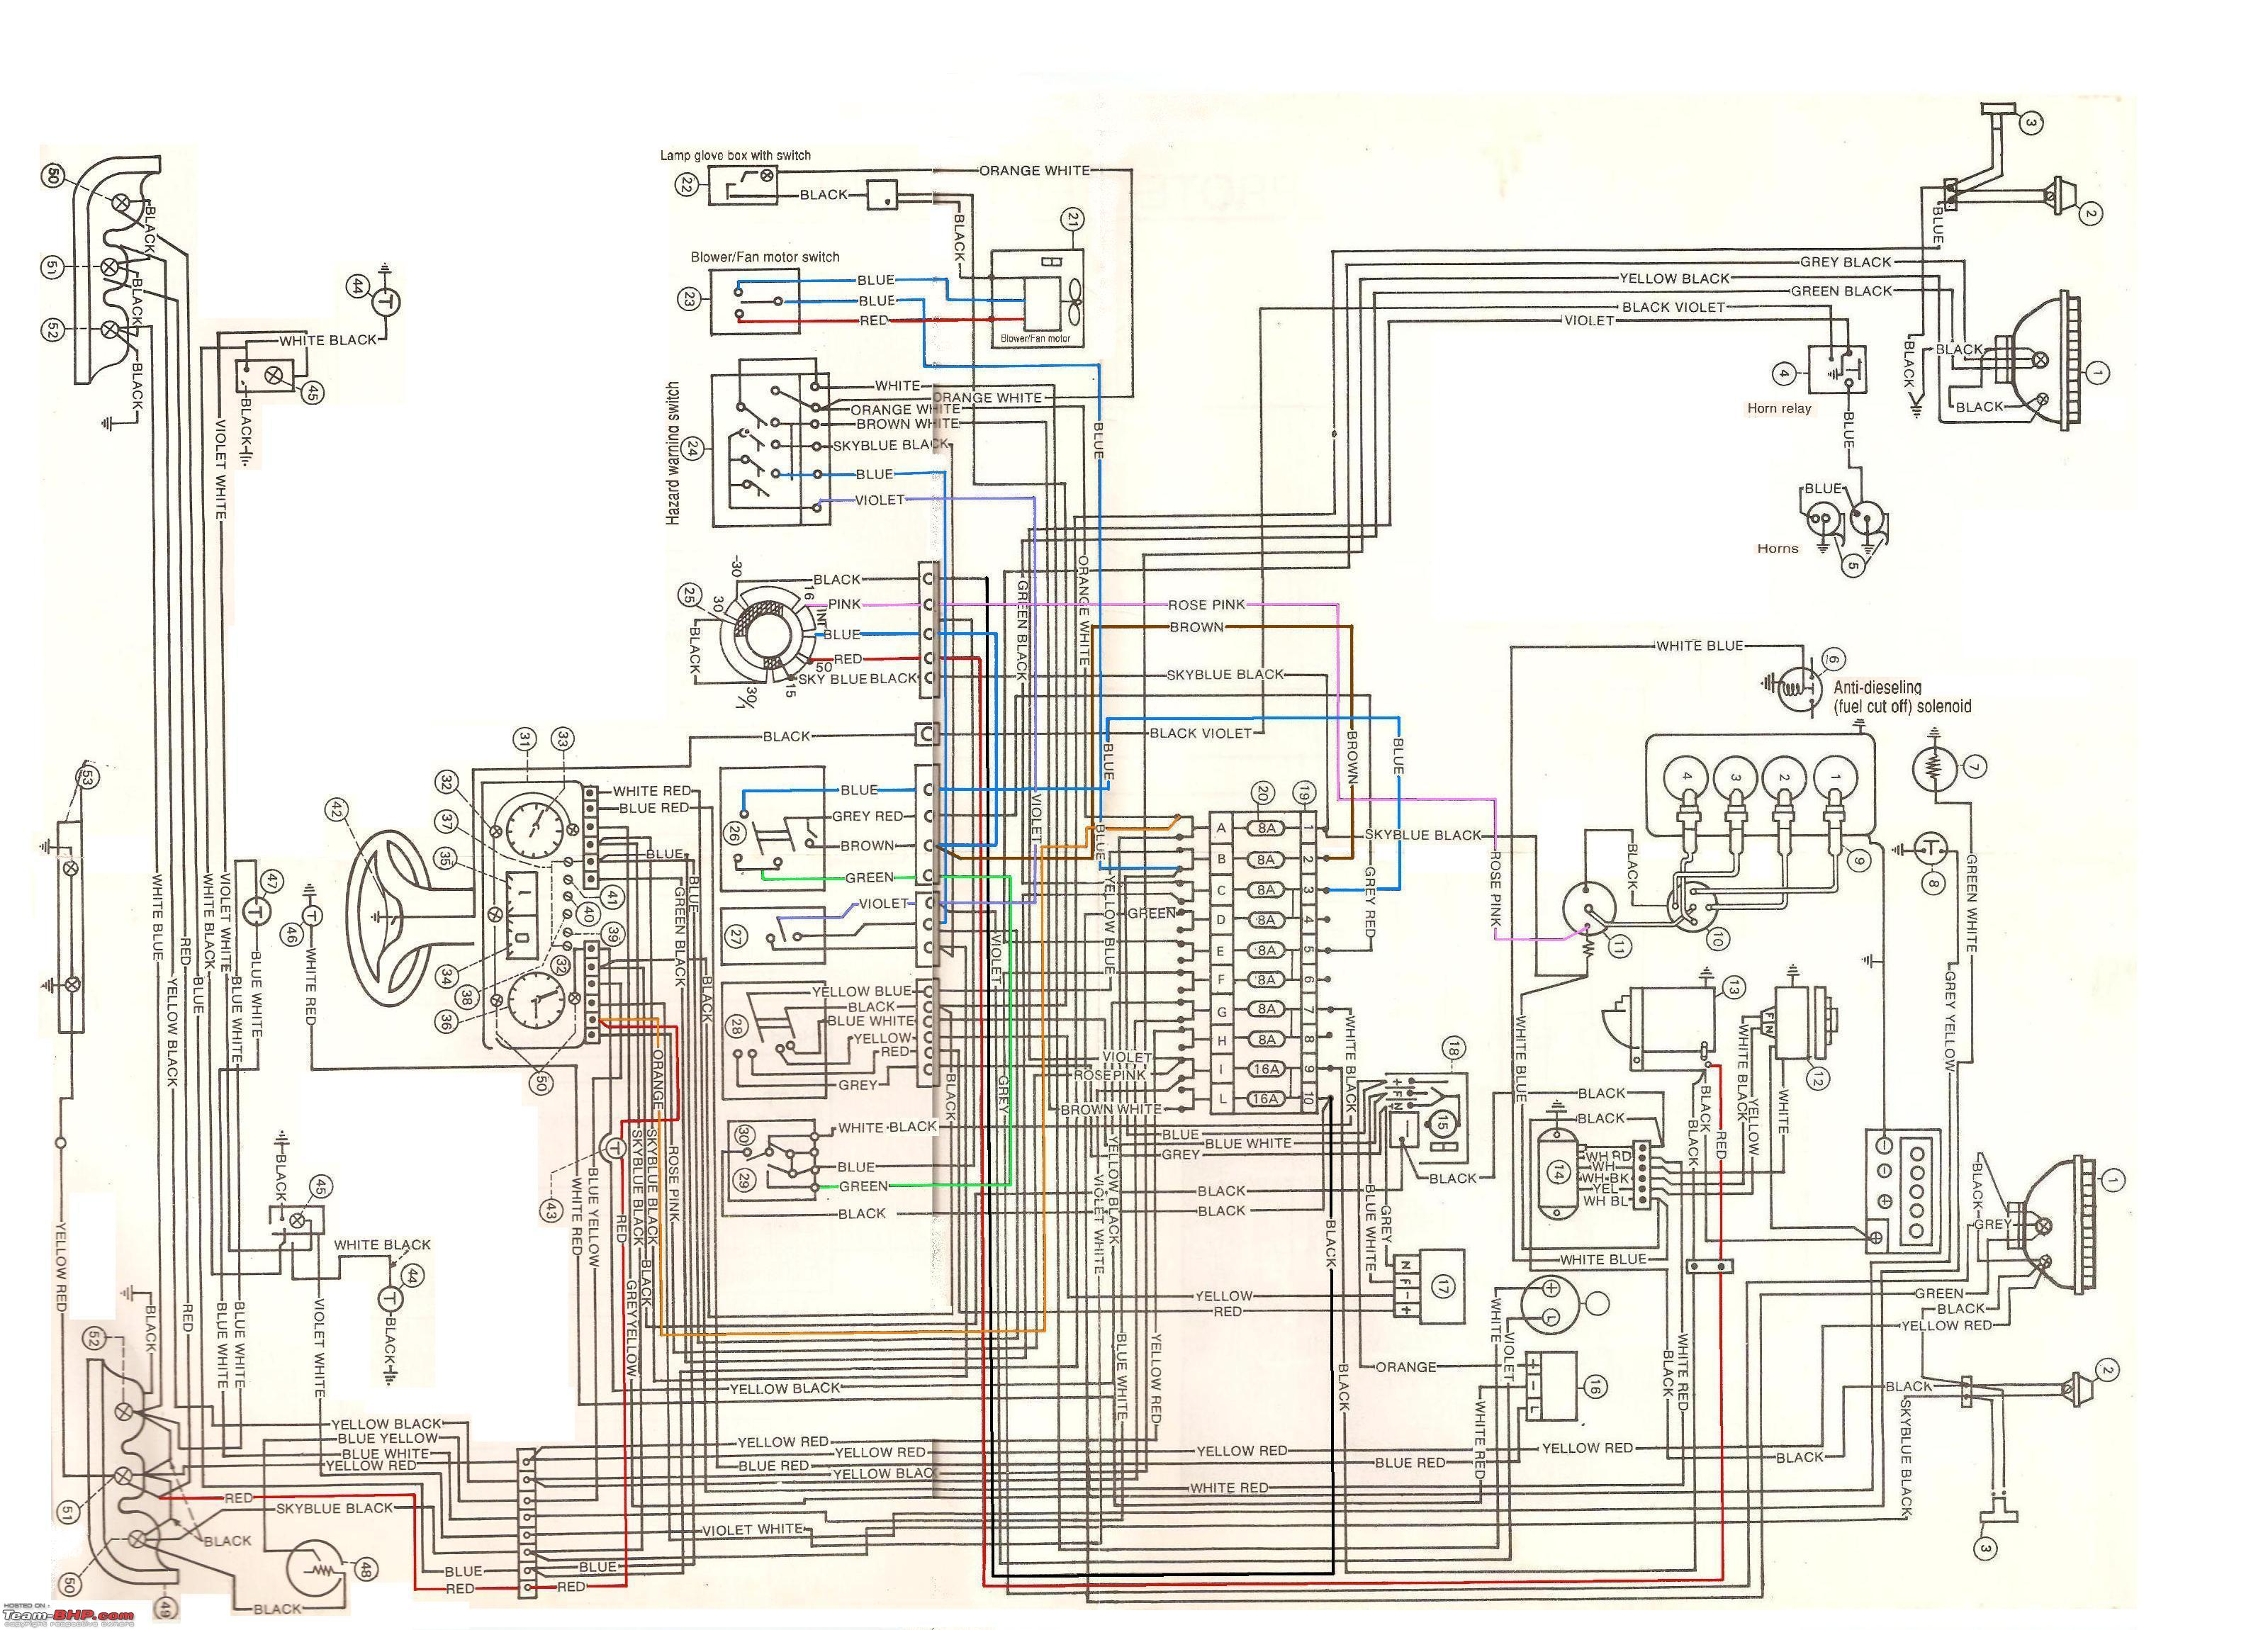 Schematic Car Wiring Diagram Page 118 Electrical Diagrams Zl1000 The Premier Ne Thread 43 Team Bhp Typical Gm Alternator However This